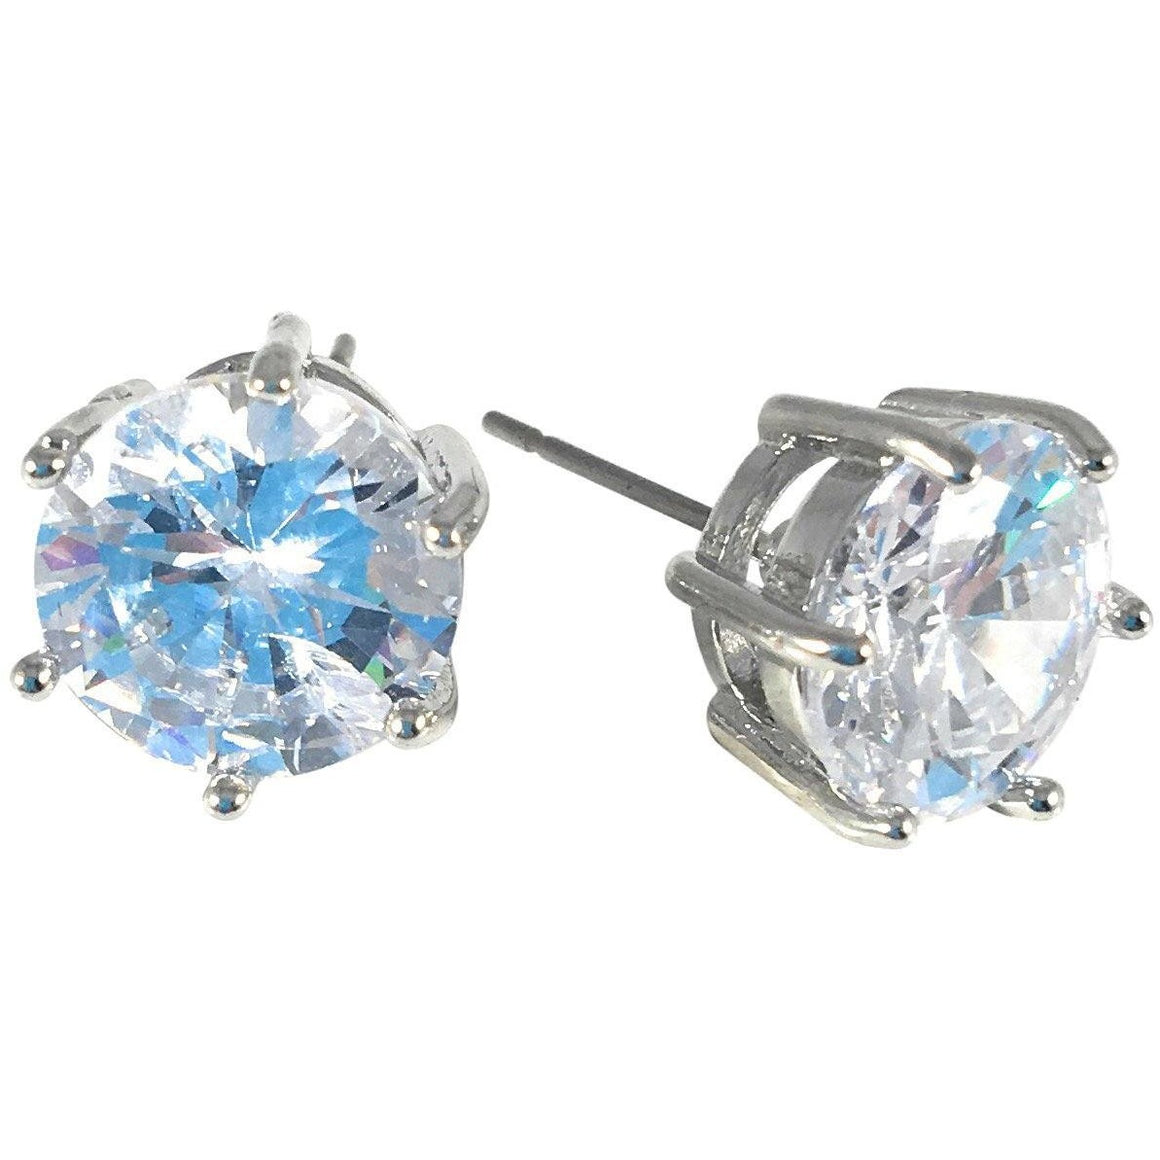 Cubic Zirconia Earrings Round Stud 10mm - Beads and Dangles